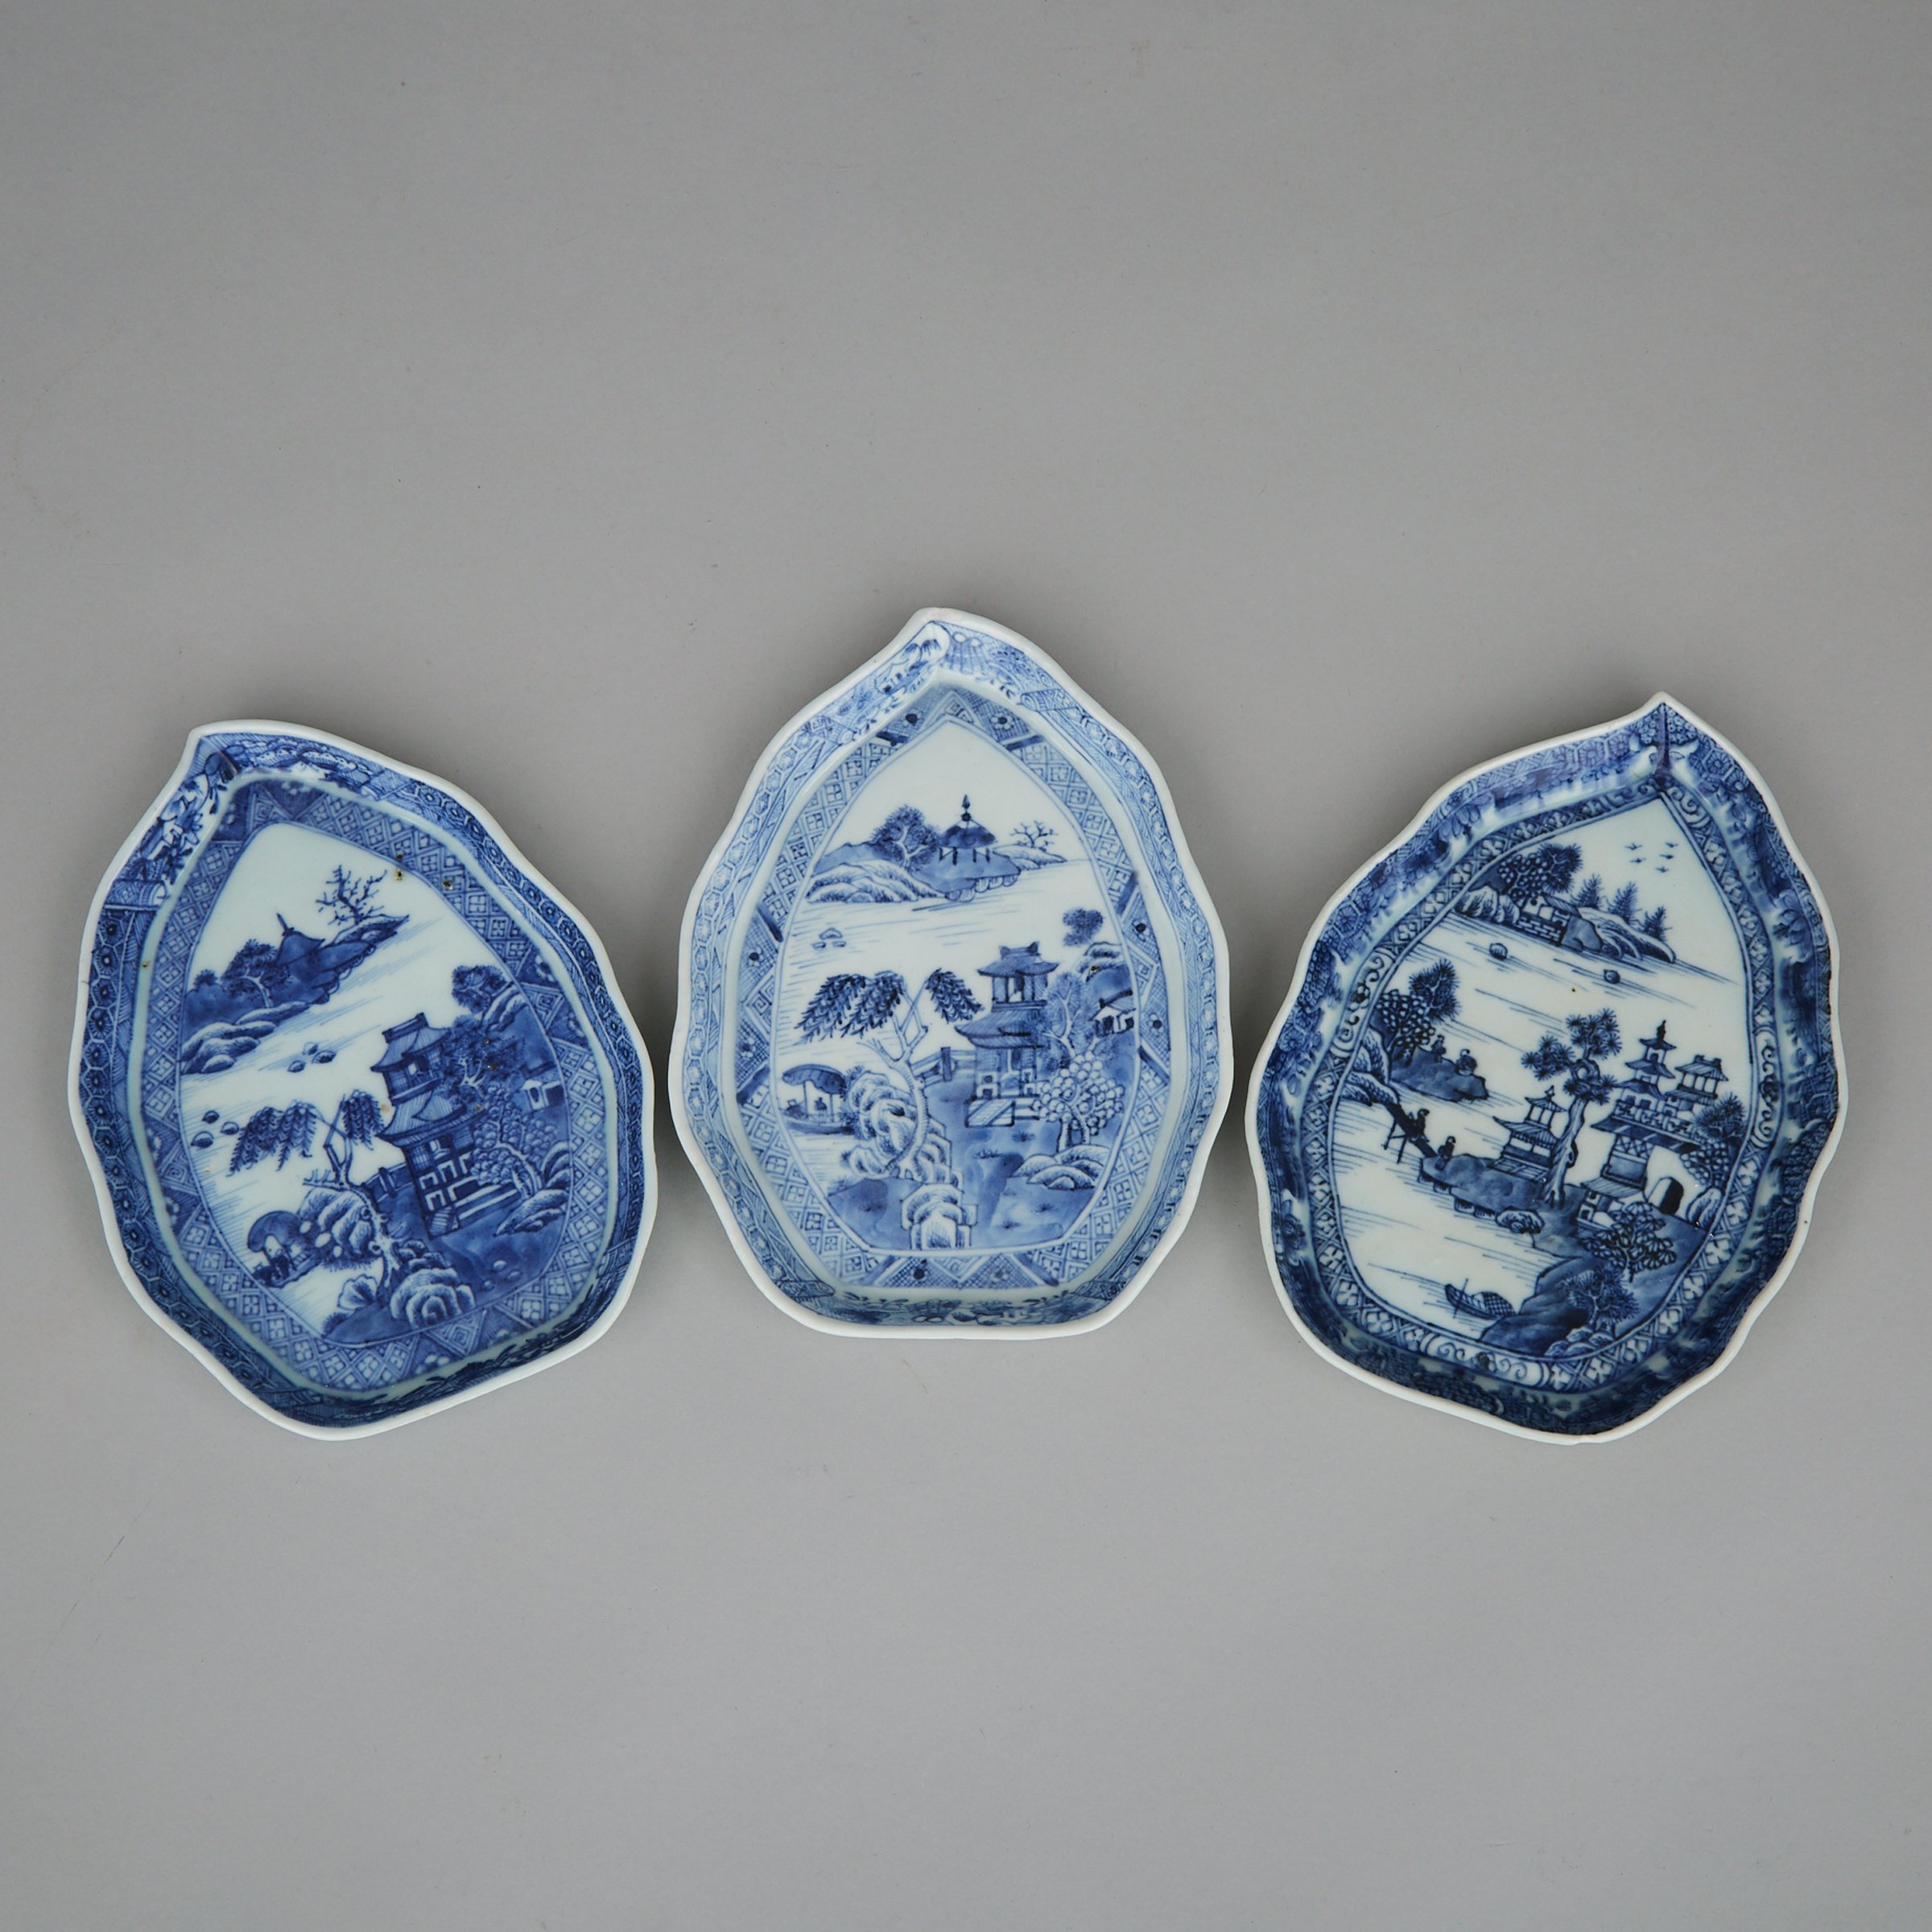 A Group of Three Chinese Blue and White Export Dishes, 19th Century